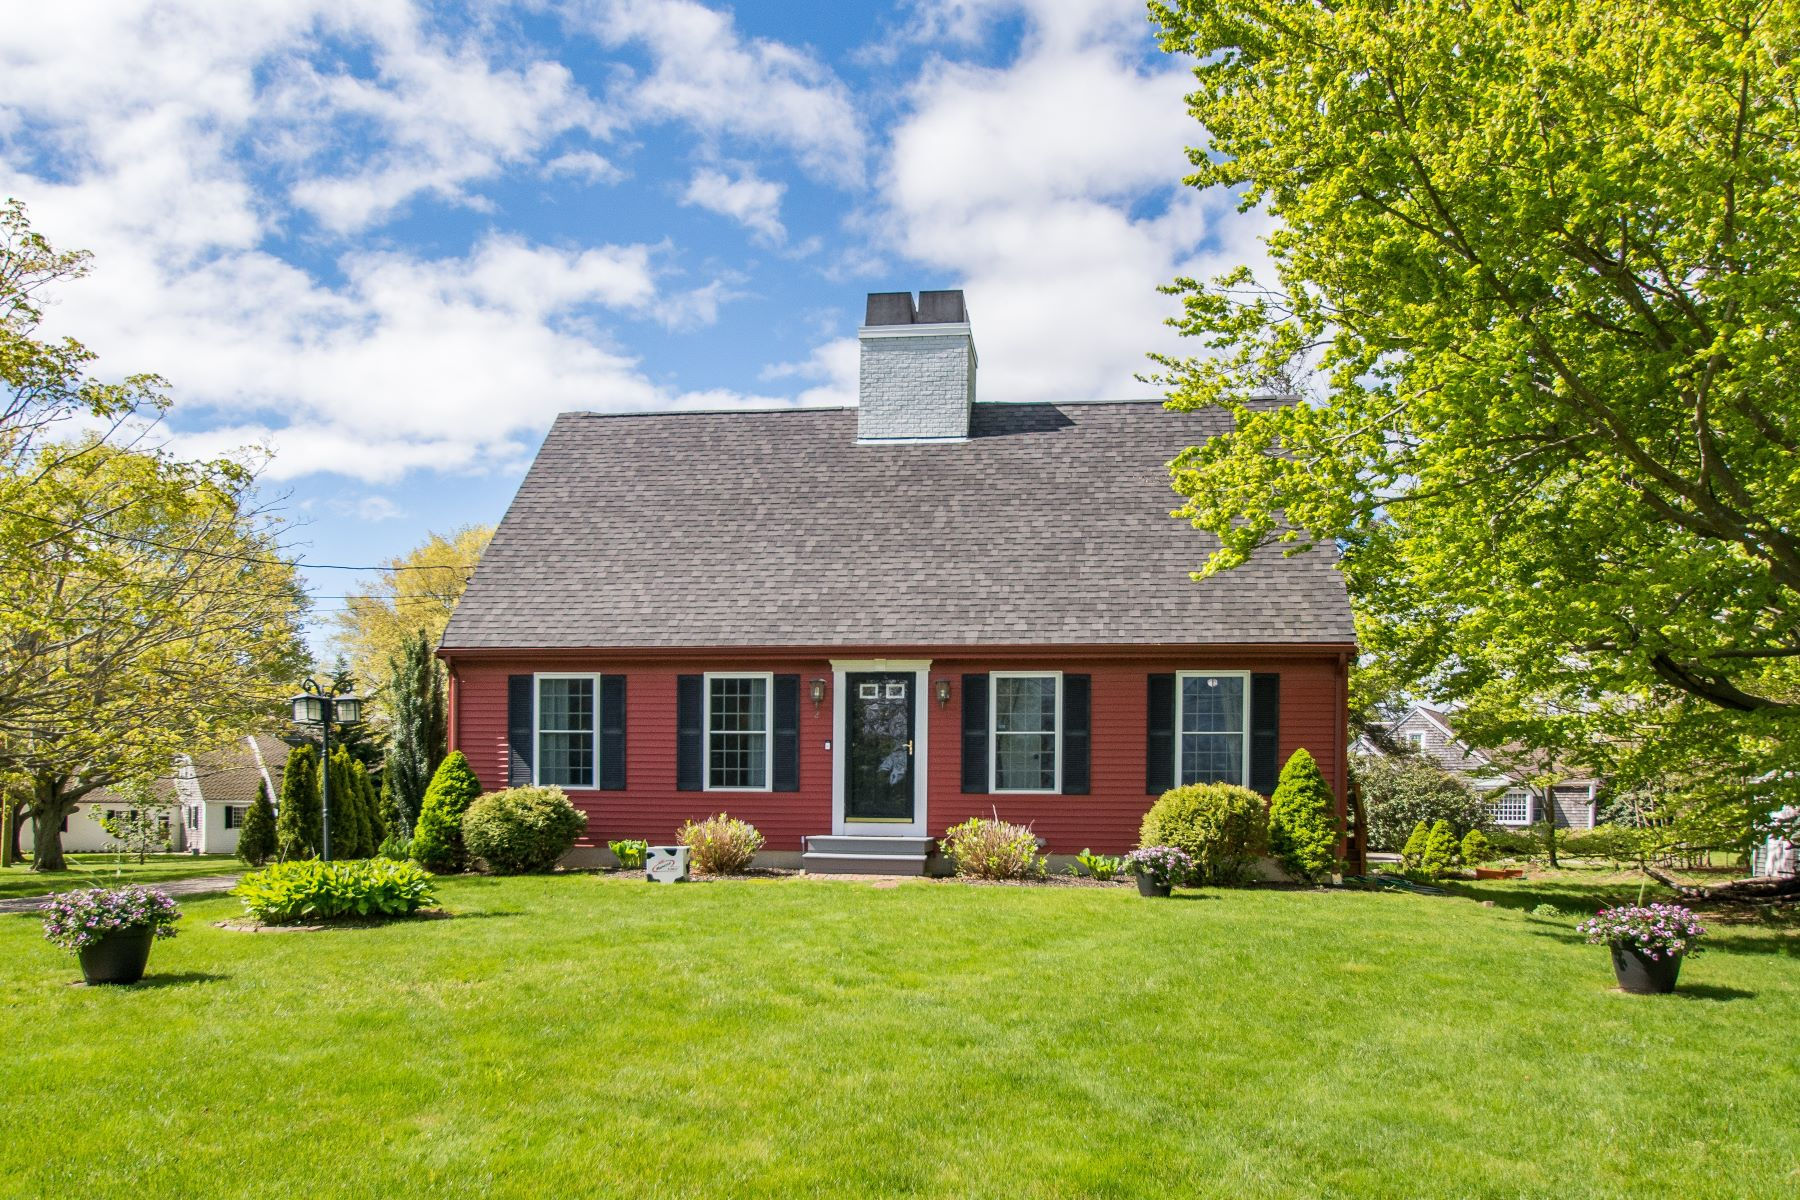 single family homes for Sale at 2 Johnson Ter, Middletown, RI Middletown, Rhode Island 02842 United States